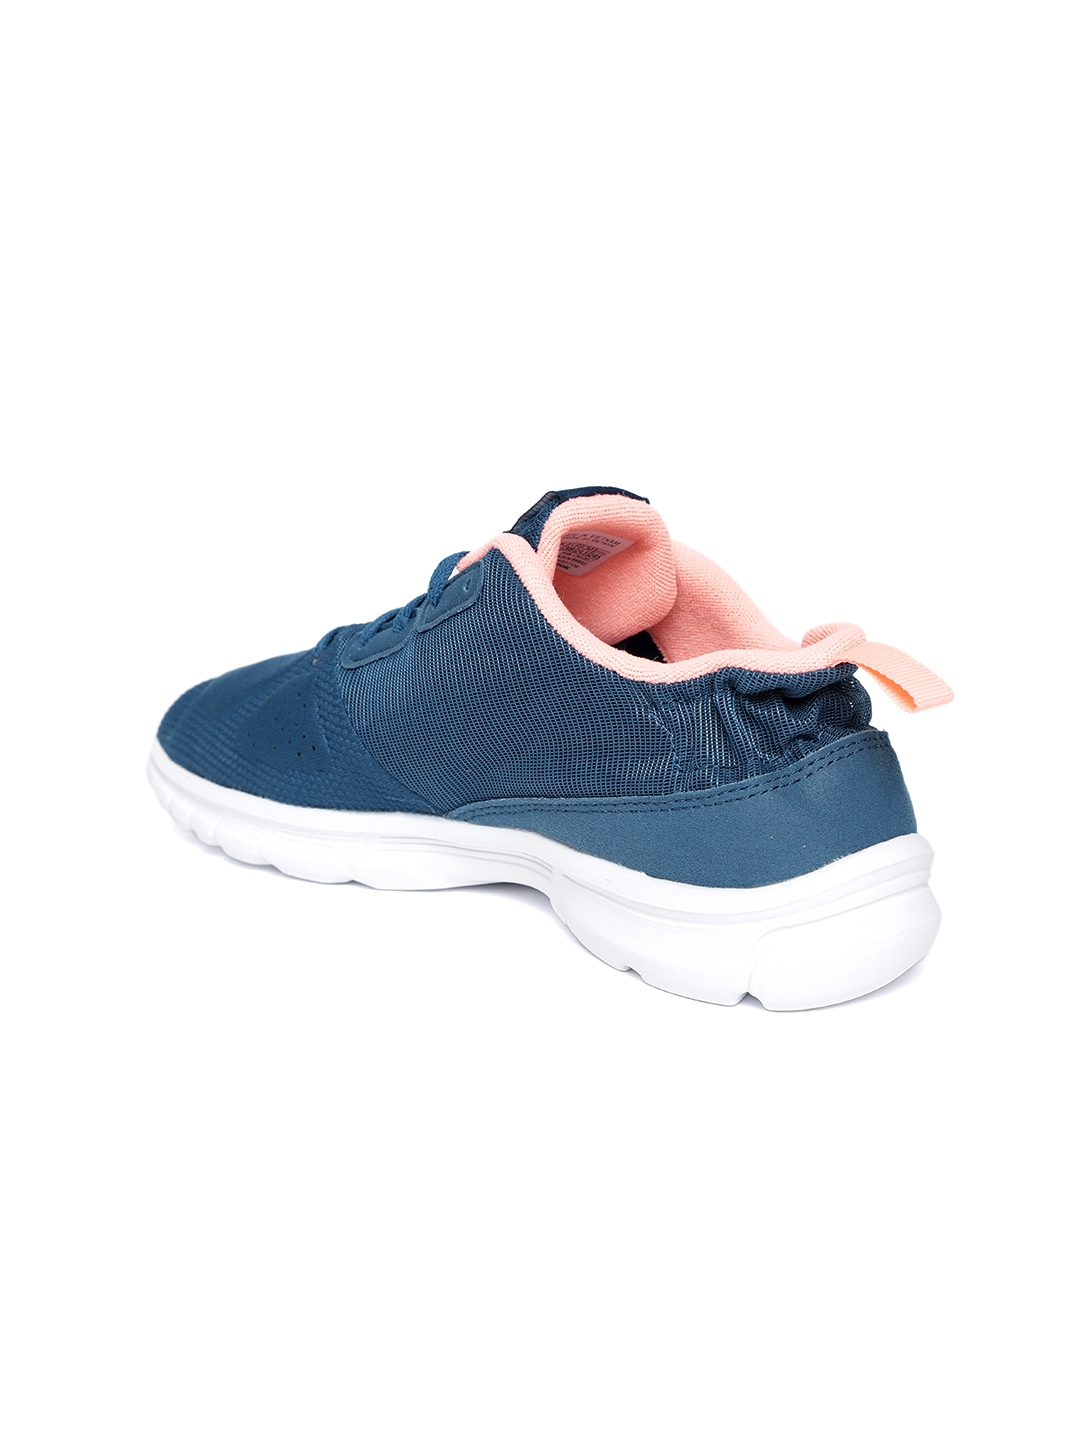 9b5ad5876 Buy Reebok Women Teal Blue Aim MT Running Shoes - Sports Shoes for ...